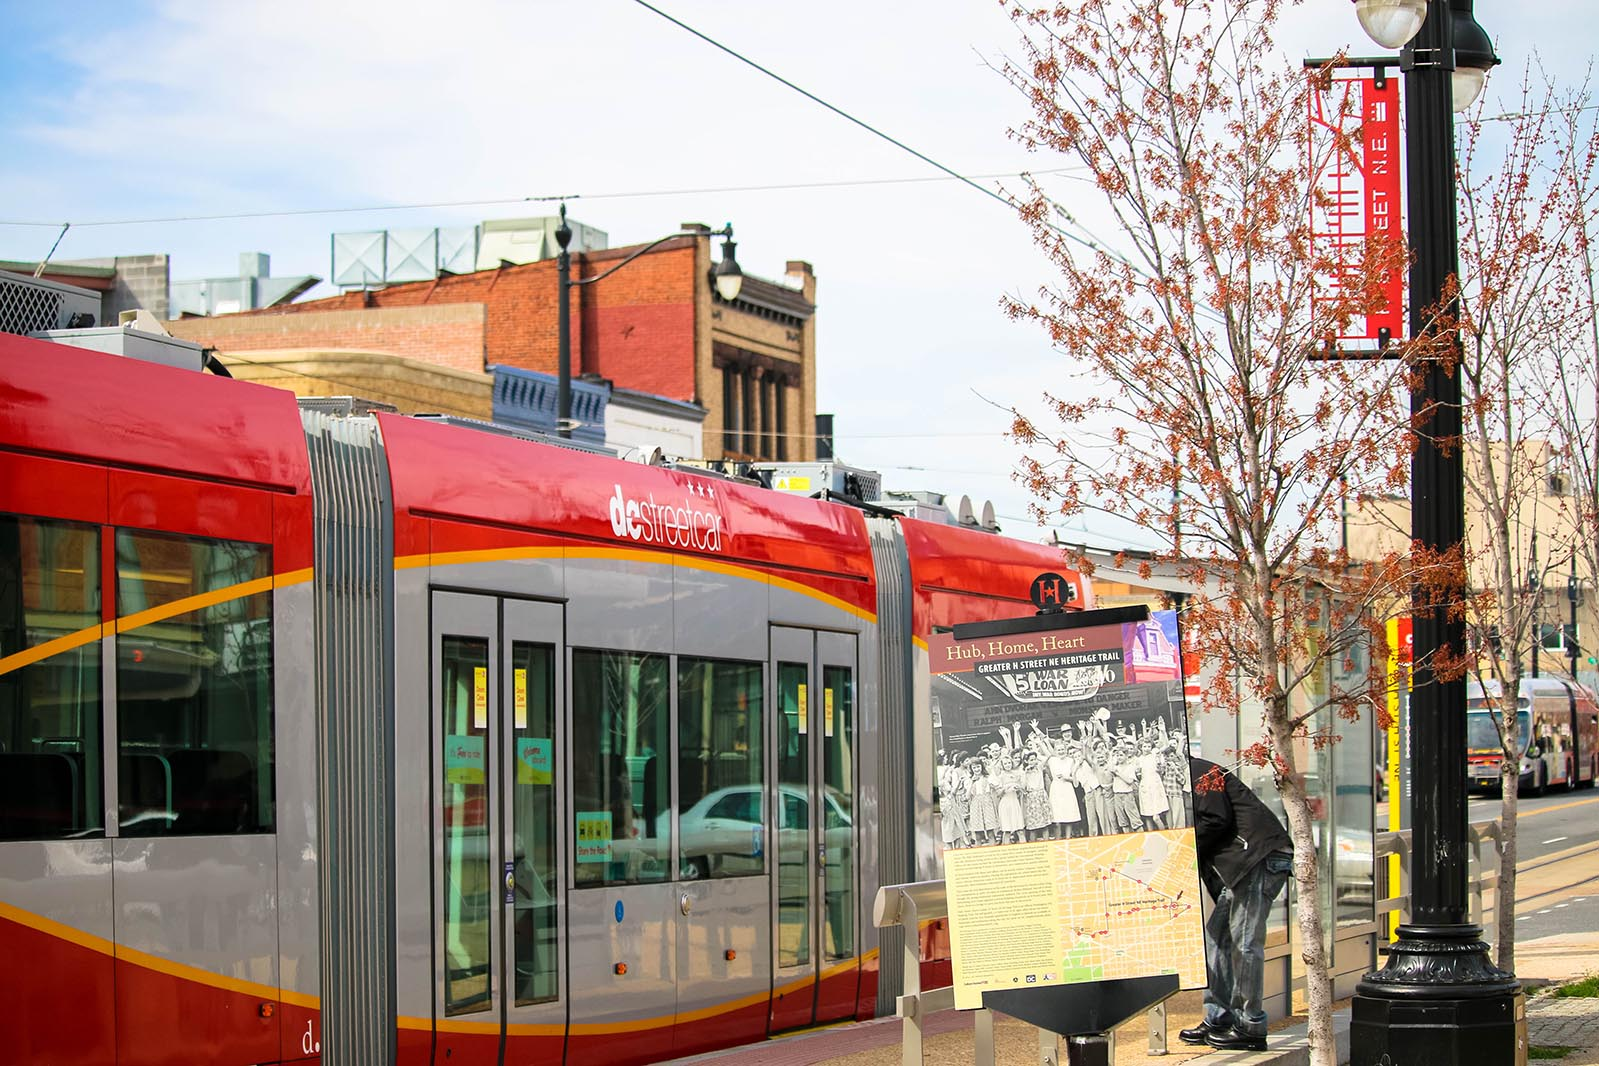 DC streetcar in Atlas District, Washington, D.C.